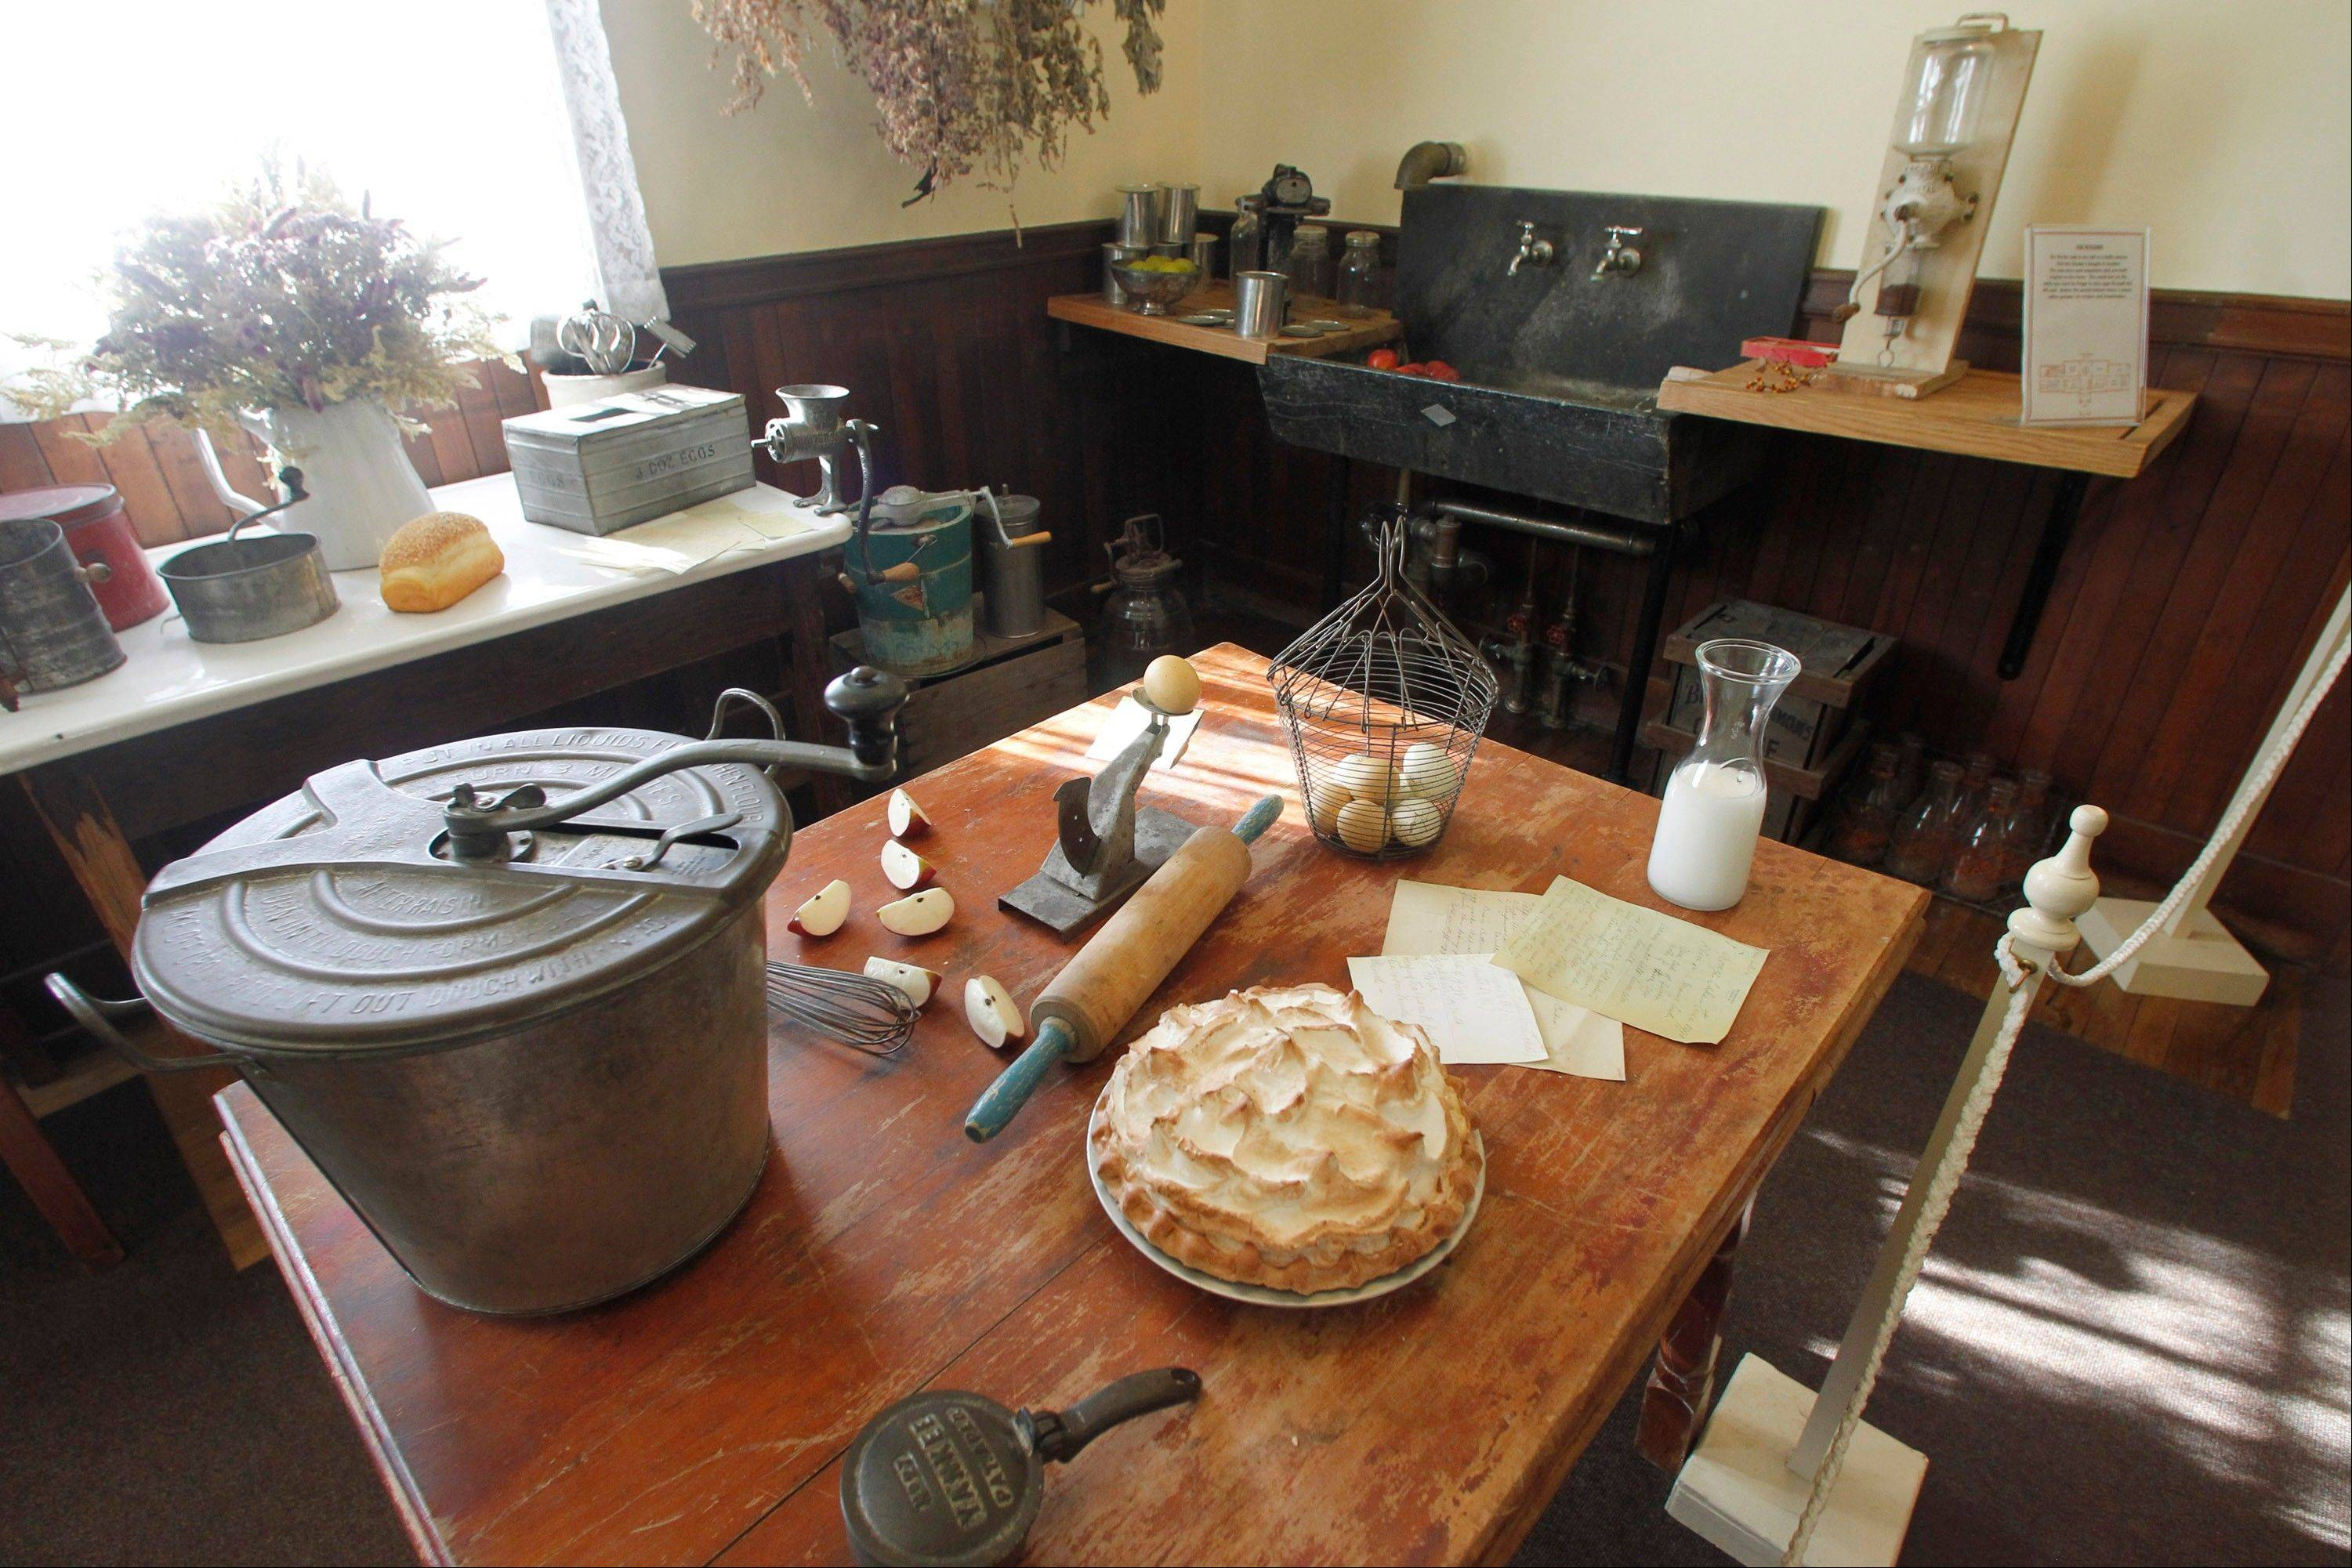 The kitchen at the Robert Todd Lincoln mansion.